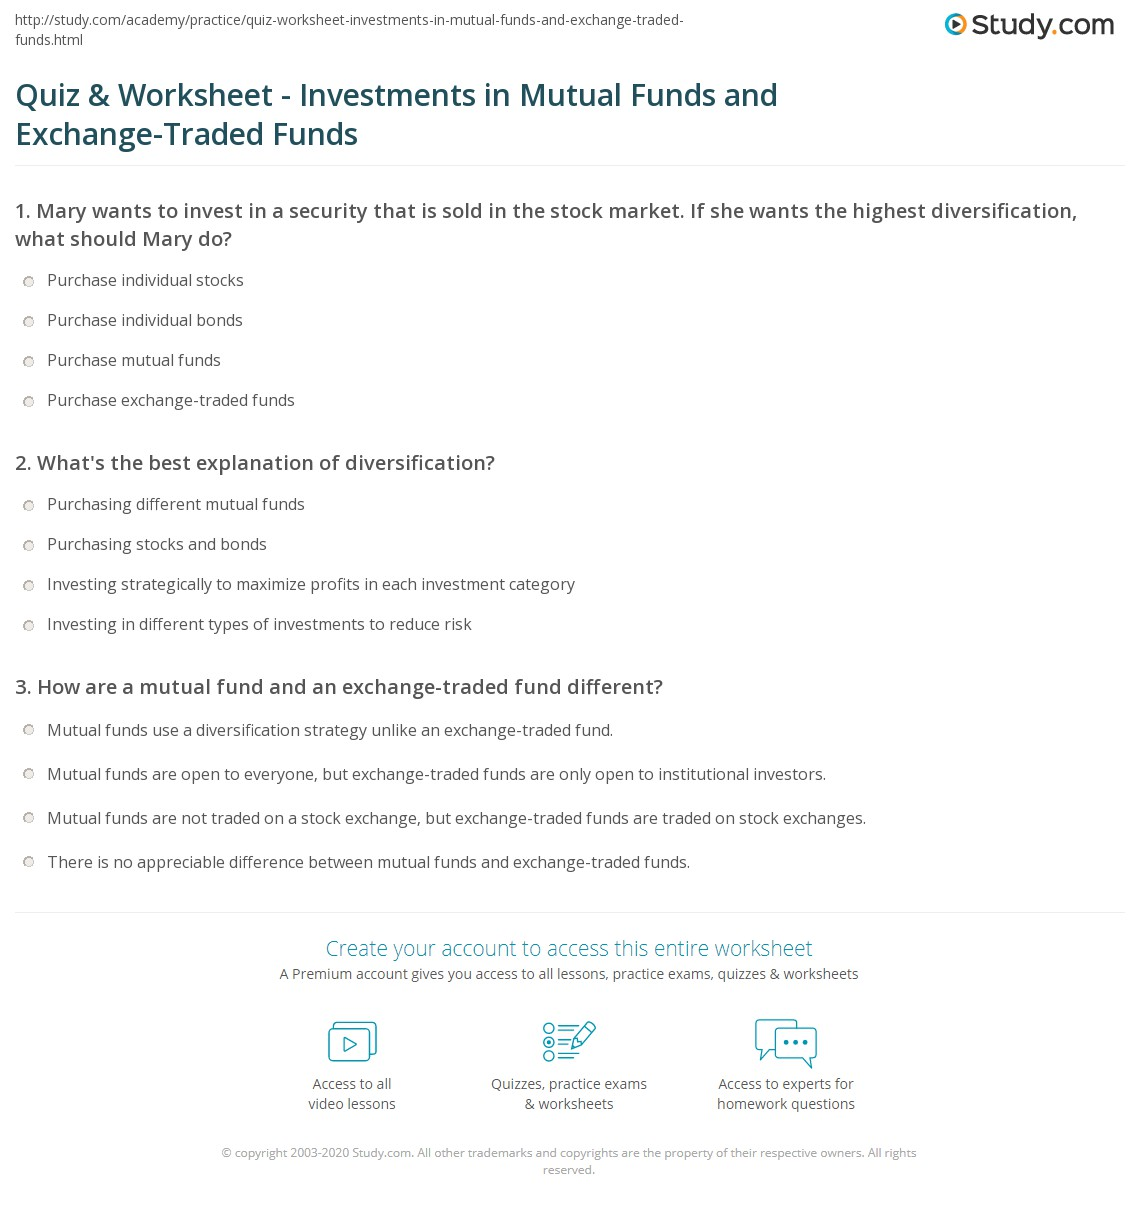 Quiz & Worksheet - Investments in Mutual Funds and Exchange